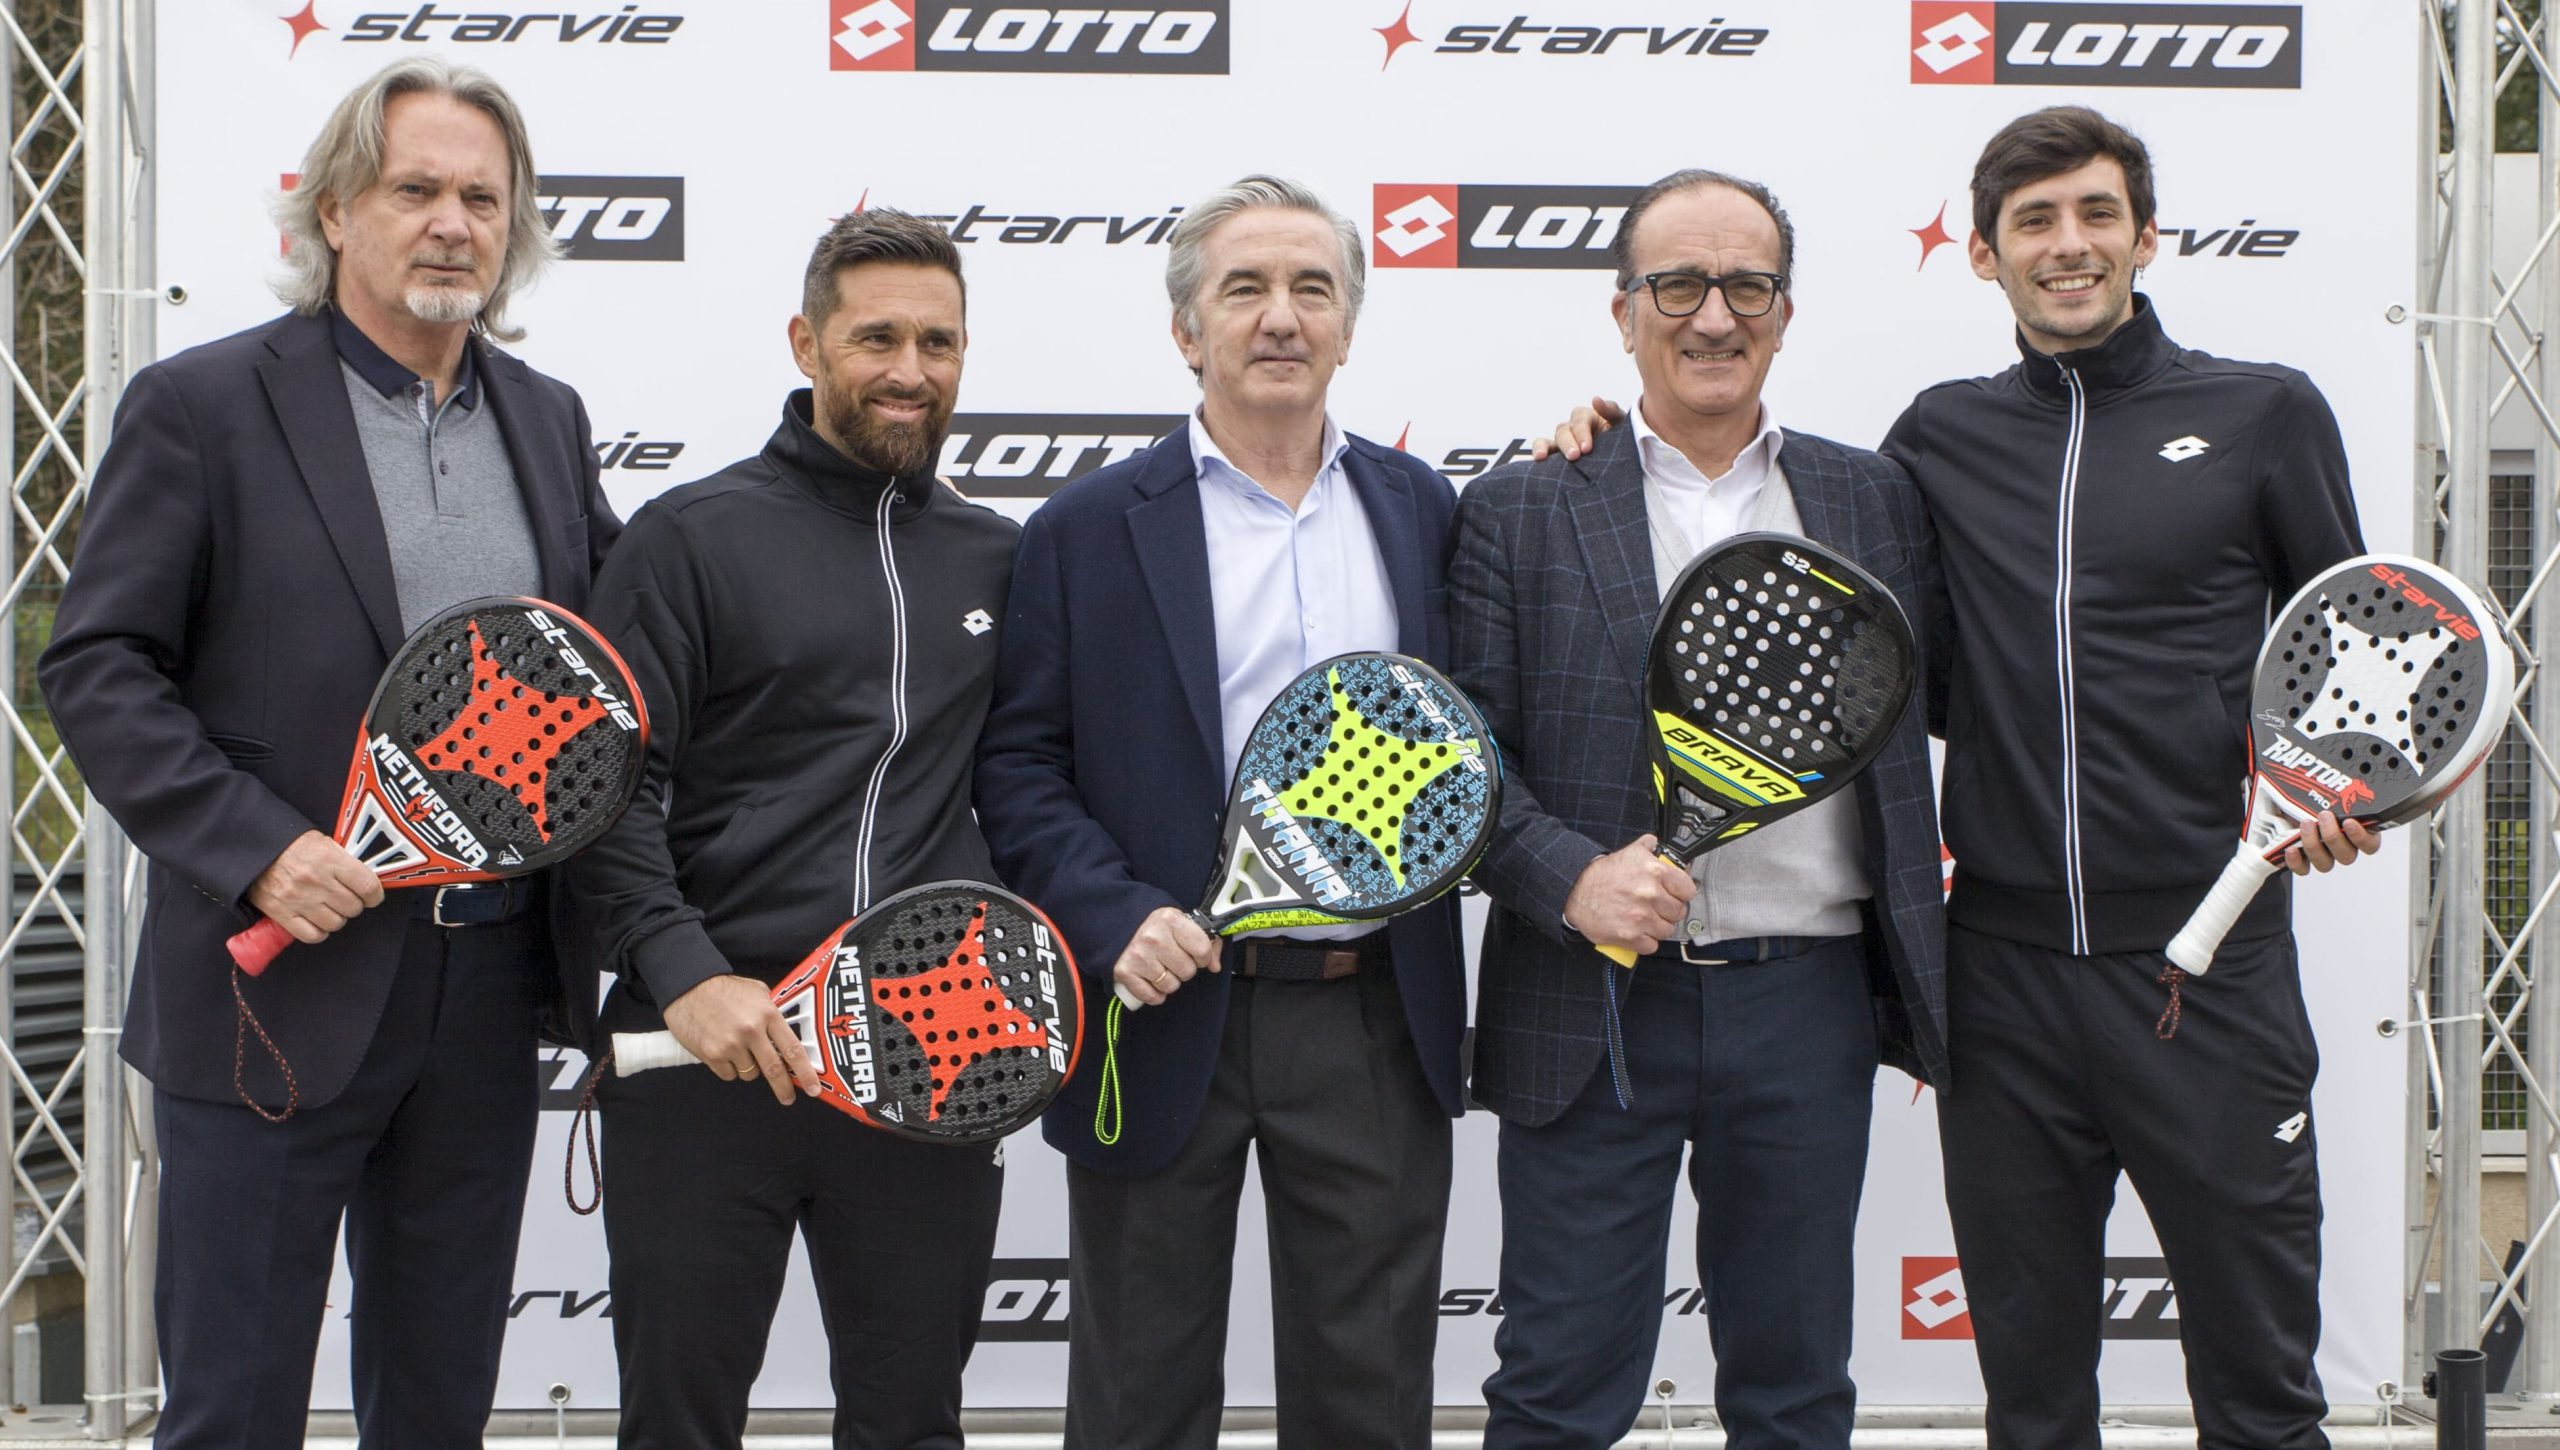 lotto-sport-italia-becomes-technical-sponsor-of-starvie